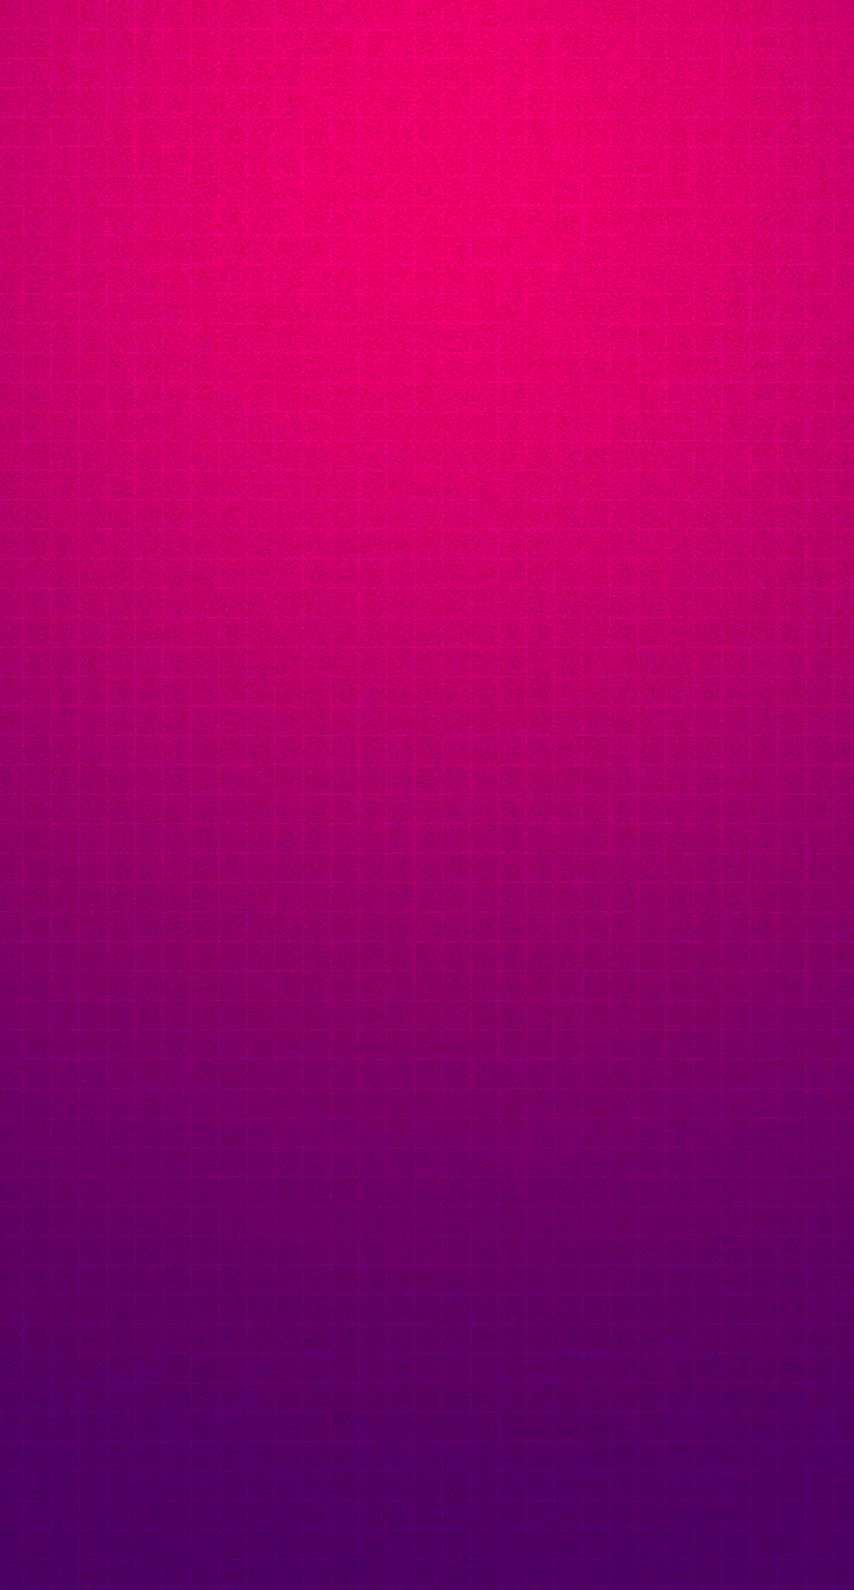 pink wallpaper for samsung a5